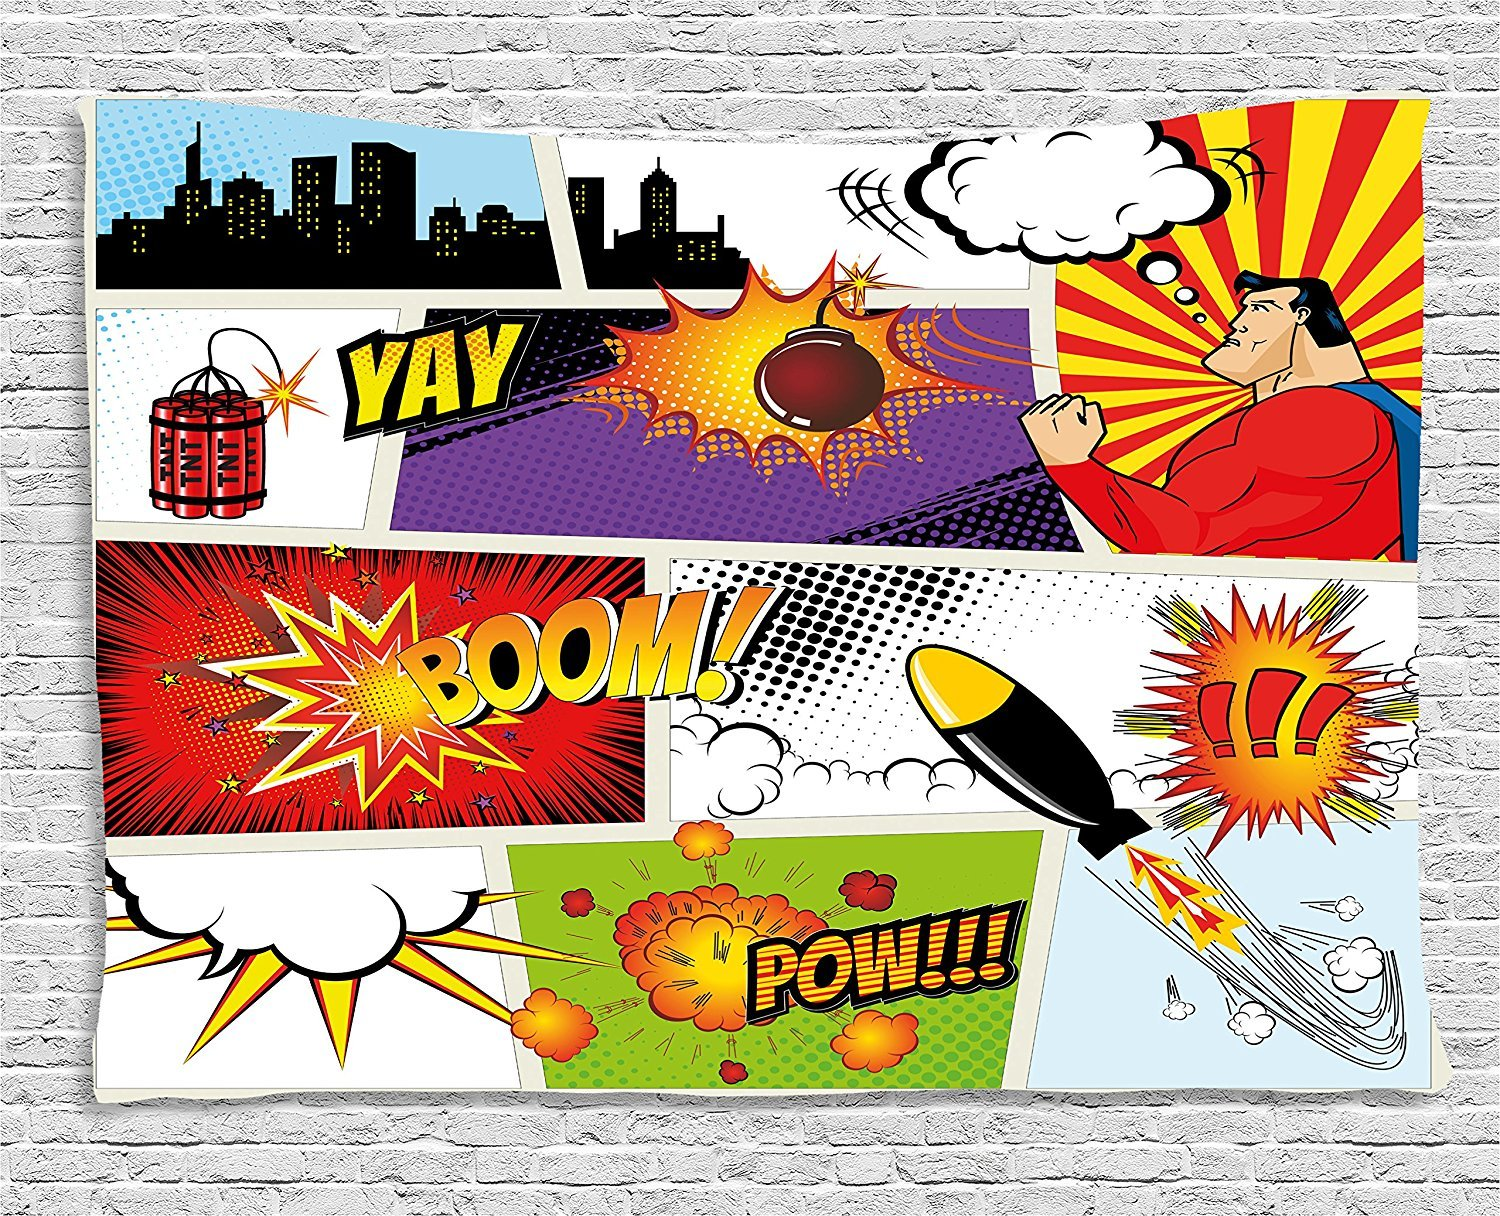 asddcdfdd Superhero Tapestry, Retro Comic Book Speech Bubbles Mock-Up Symbols Sound Effects Anger Brave Graphic, Wall Hanging for Bedroom Living Room Dorm, 80 W X 60 L Inches, Multicolor